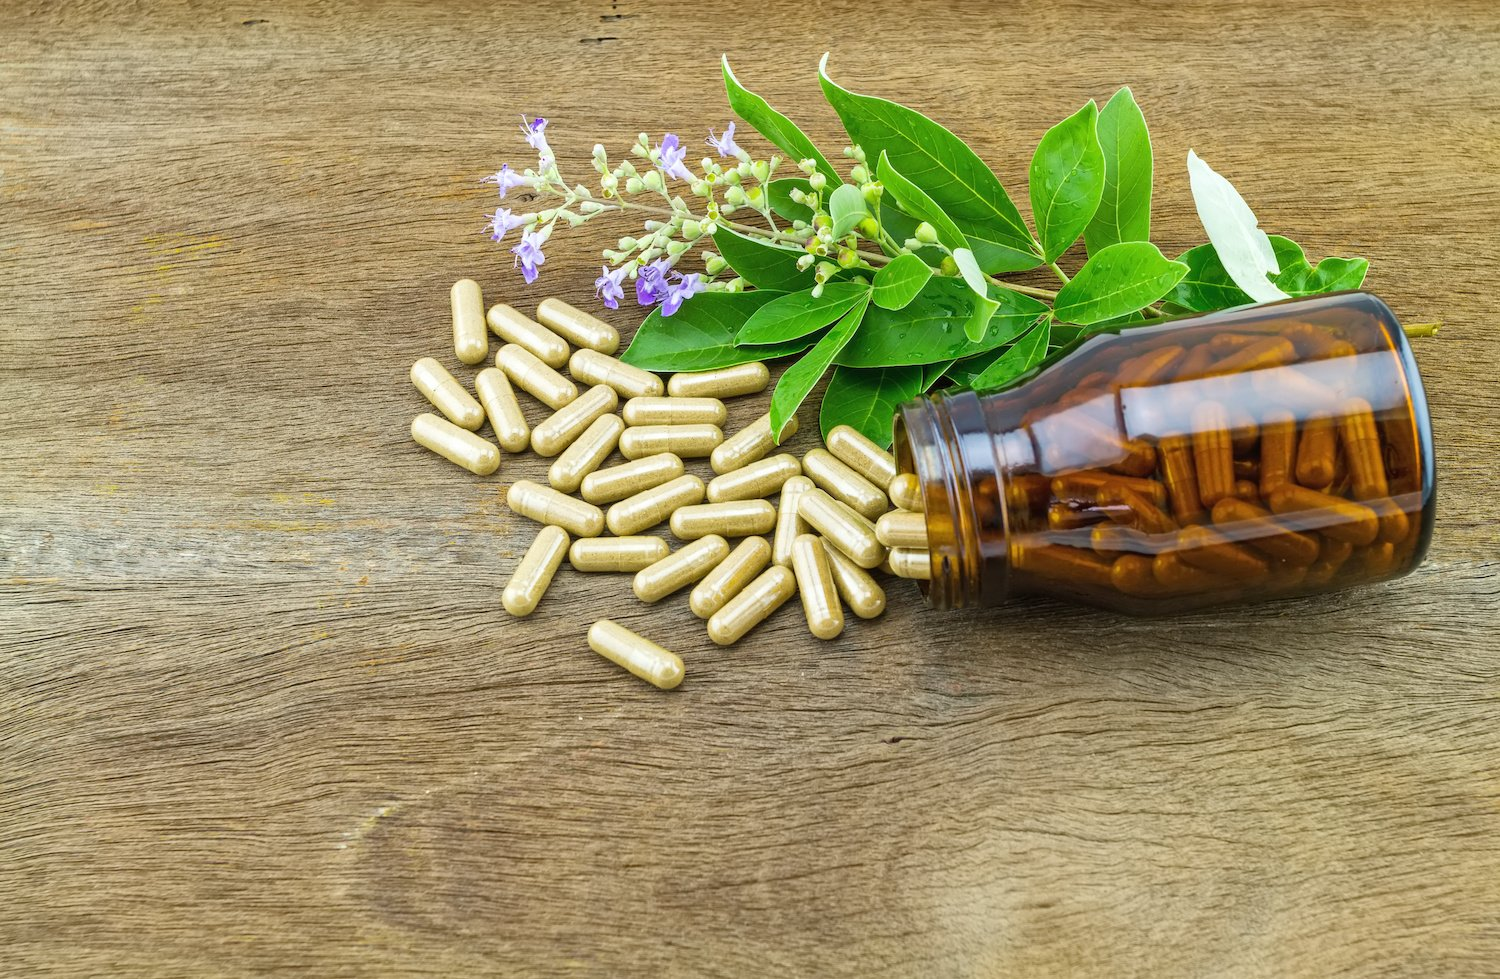 Natural remedies for menstrual cramps: Herbal supplements with a bottle, flowers, and leaves